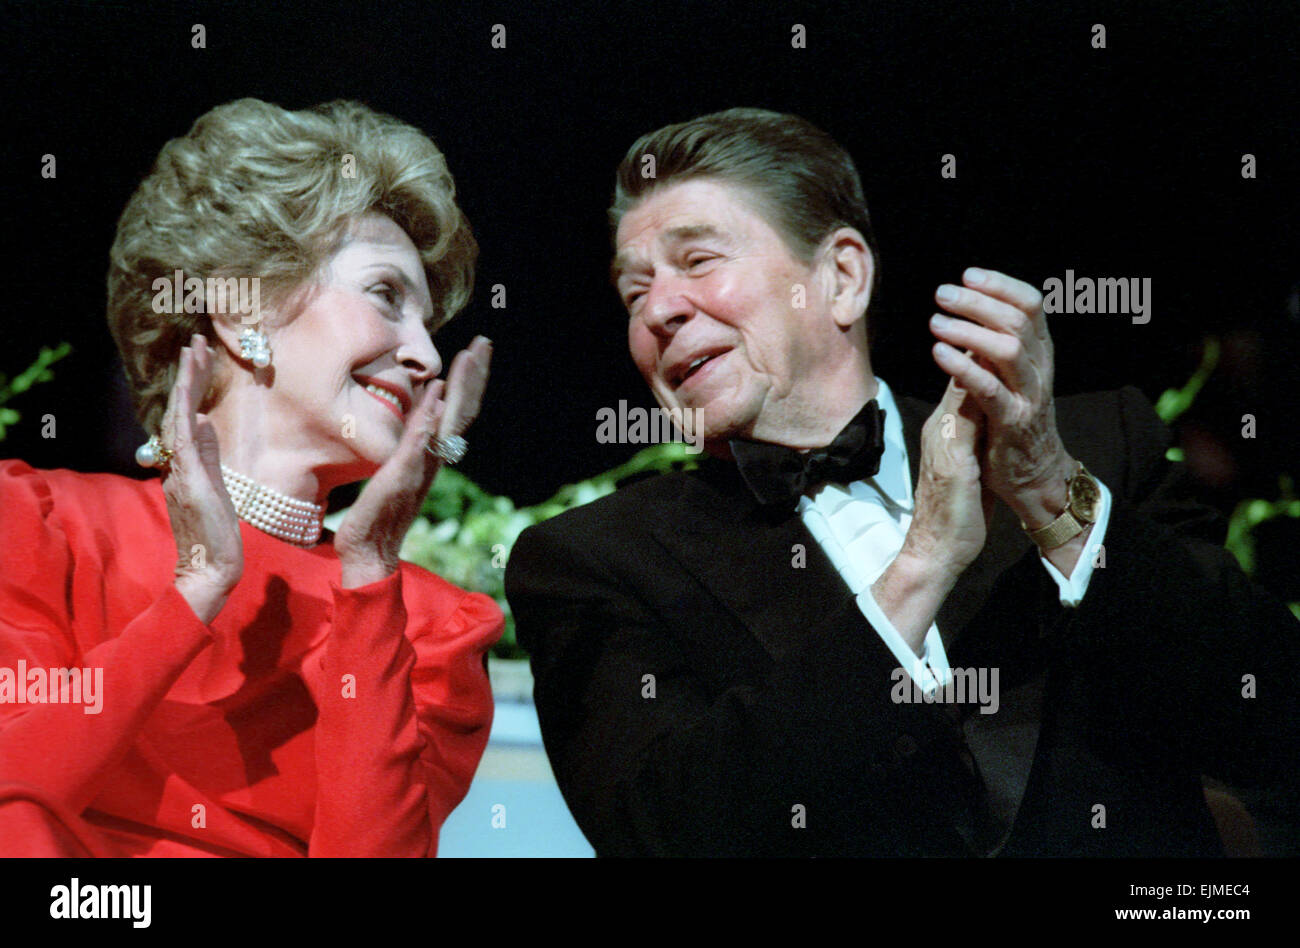 US President Ronald Reagan and First Lady Nancy Reagan during the Inaugural Ball at the DC Convention Center January - Stock Image